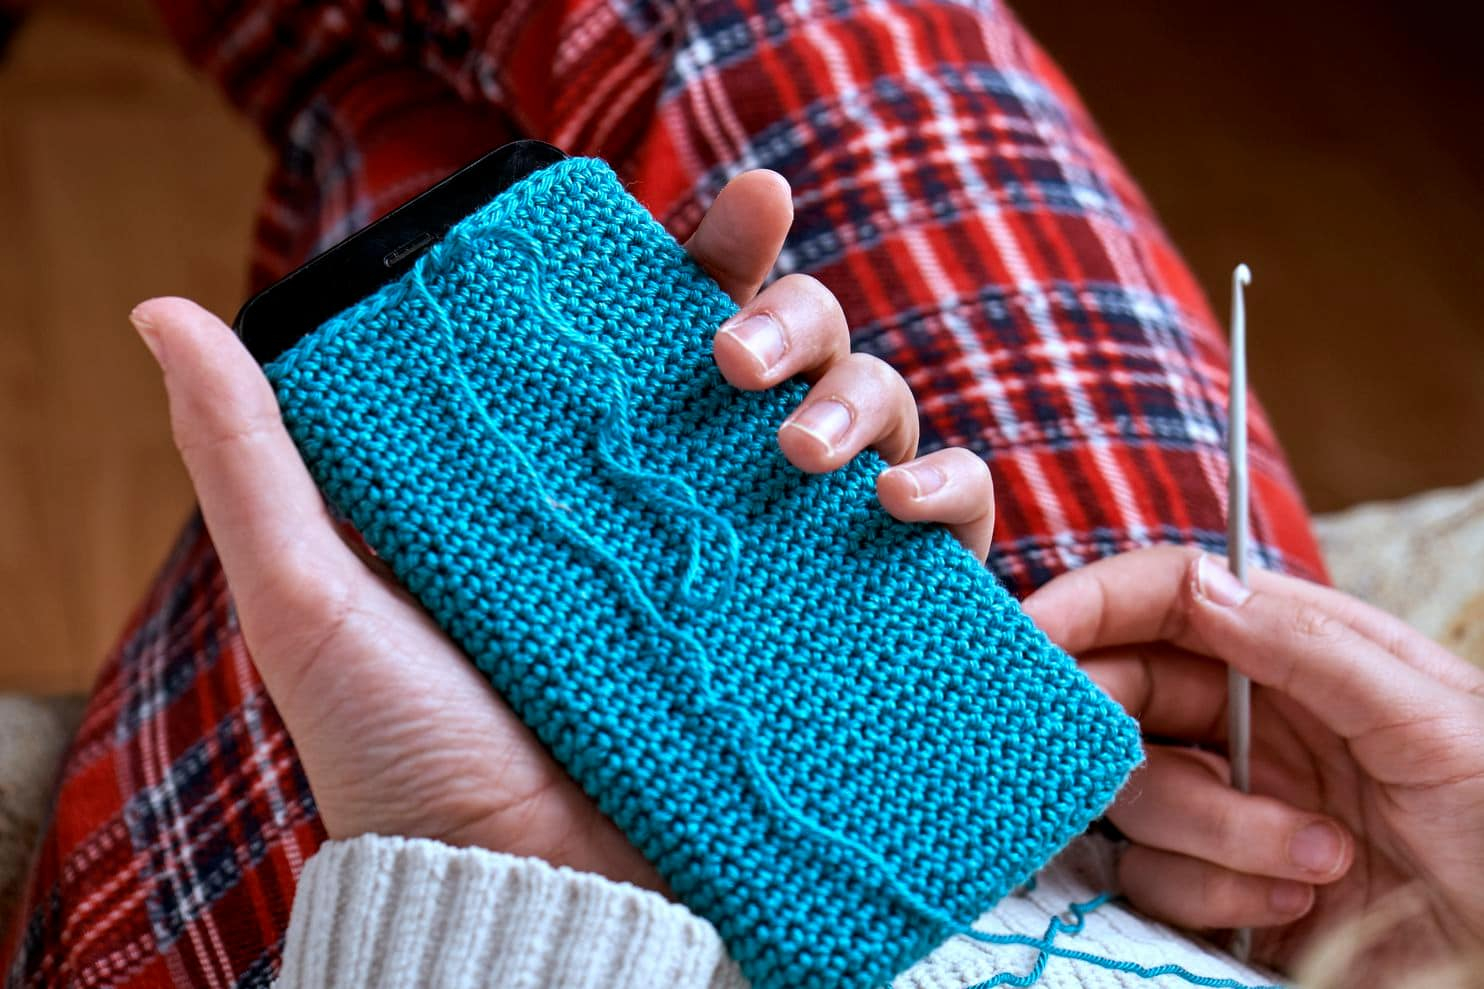 Rivalry Knitting Patterns Ravelry Knitting Website Bans Trump Discussions And Projects The